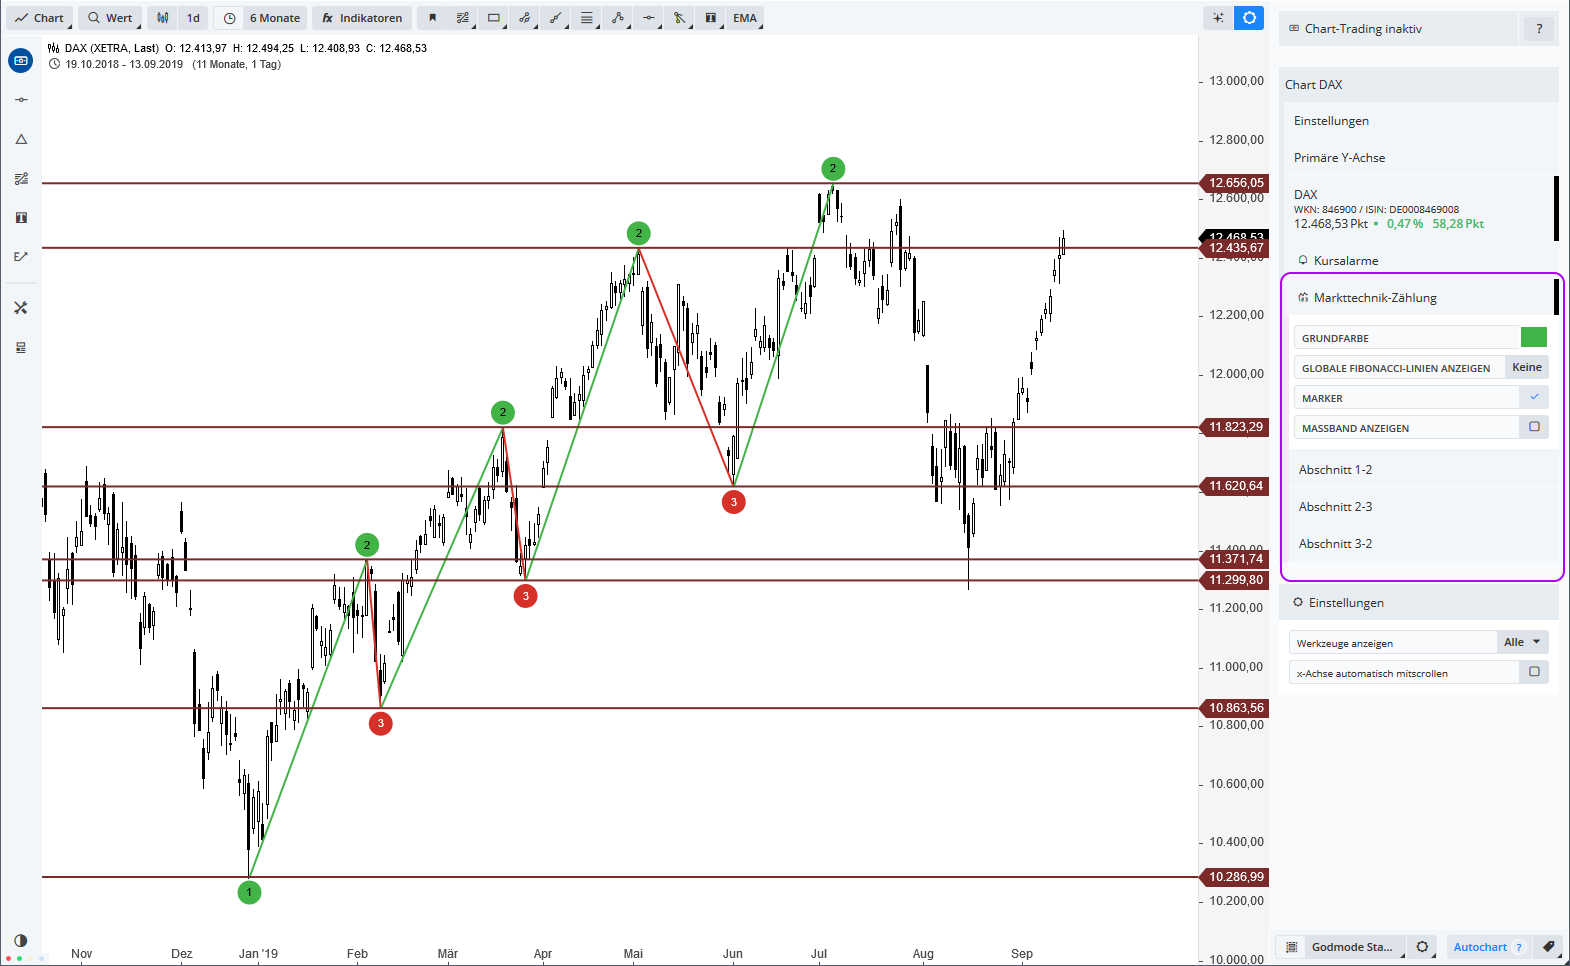 GUIDANTS-CHARTING-Das-große-Update-Thomas-May-GodmodeTrader.de-6